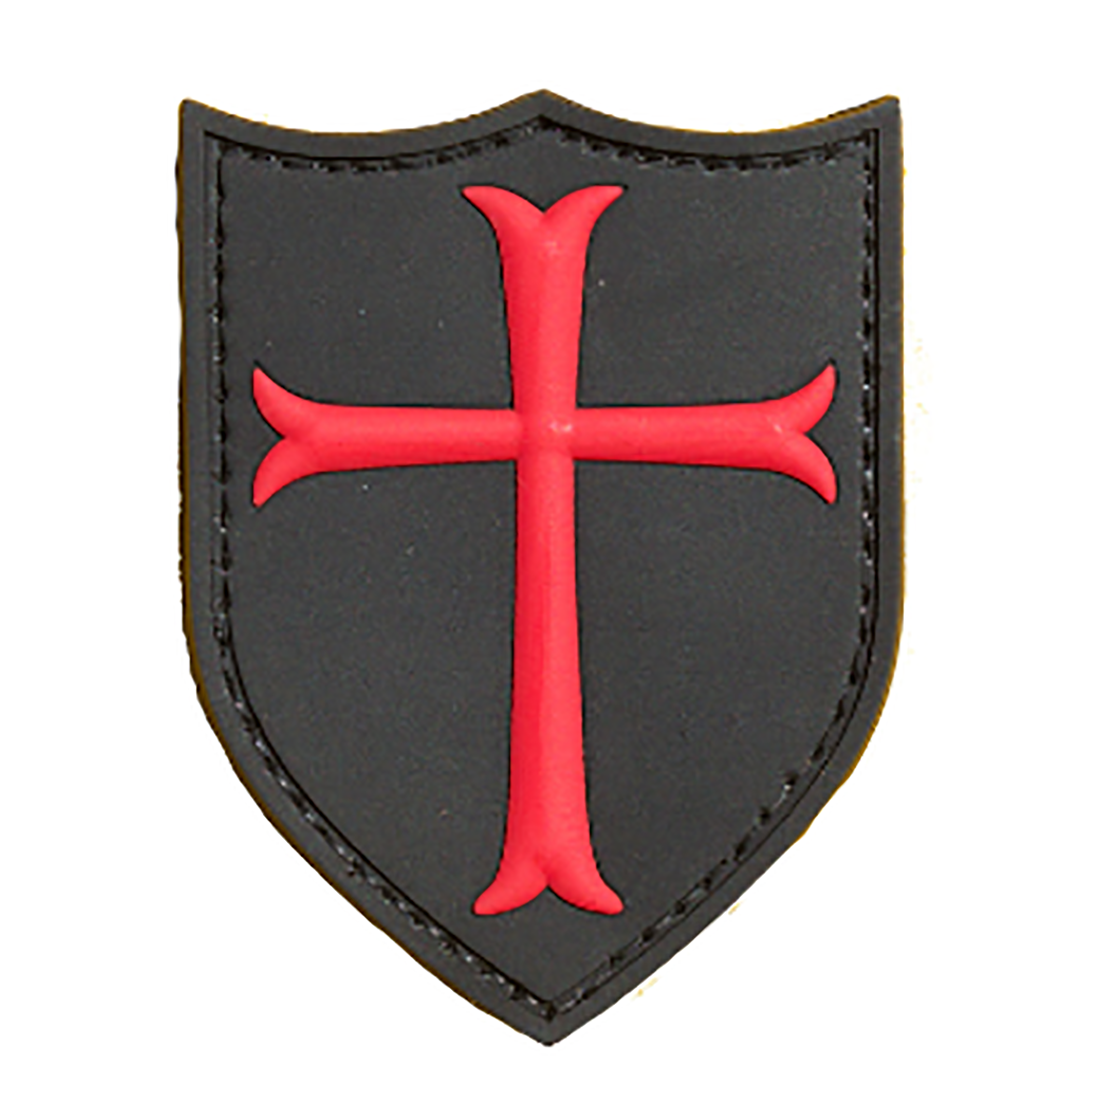 CRUSADER CROSS (Red/Black) Tactical Rubber Velcro Patches